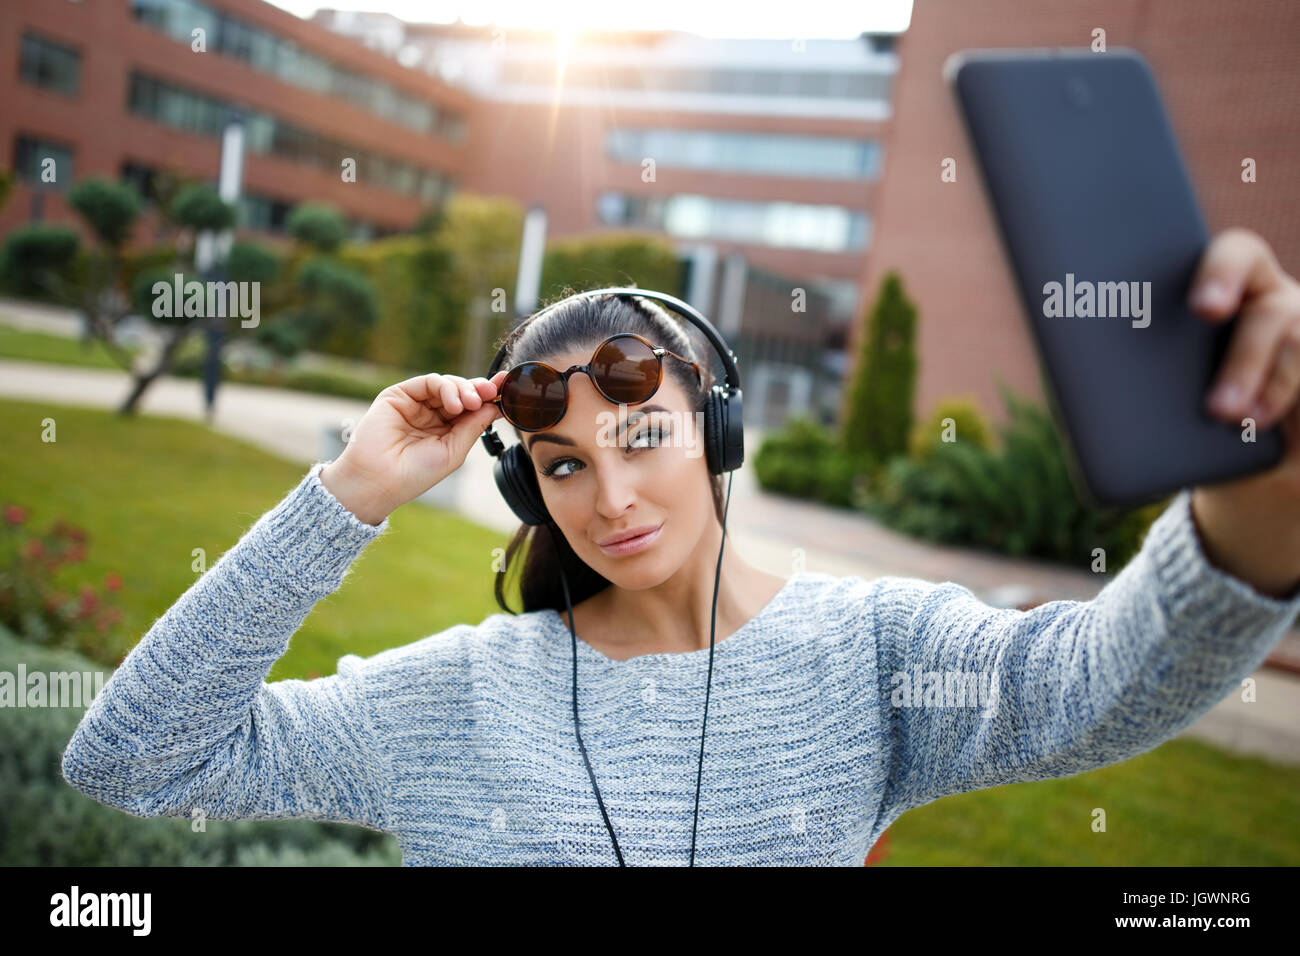 Young trendy caucasian woman taking selfie by tablet in city, wireless technology, posting to social media sites Stock Photo